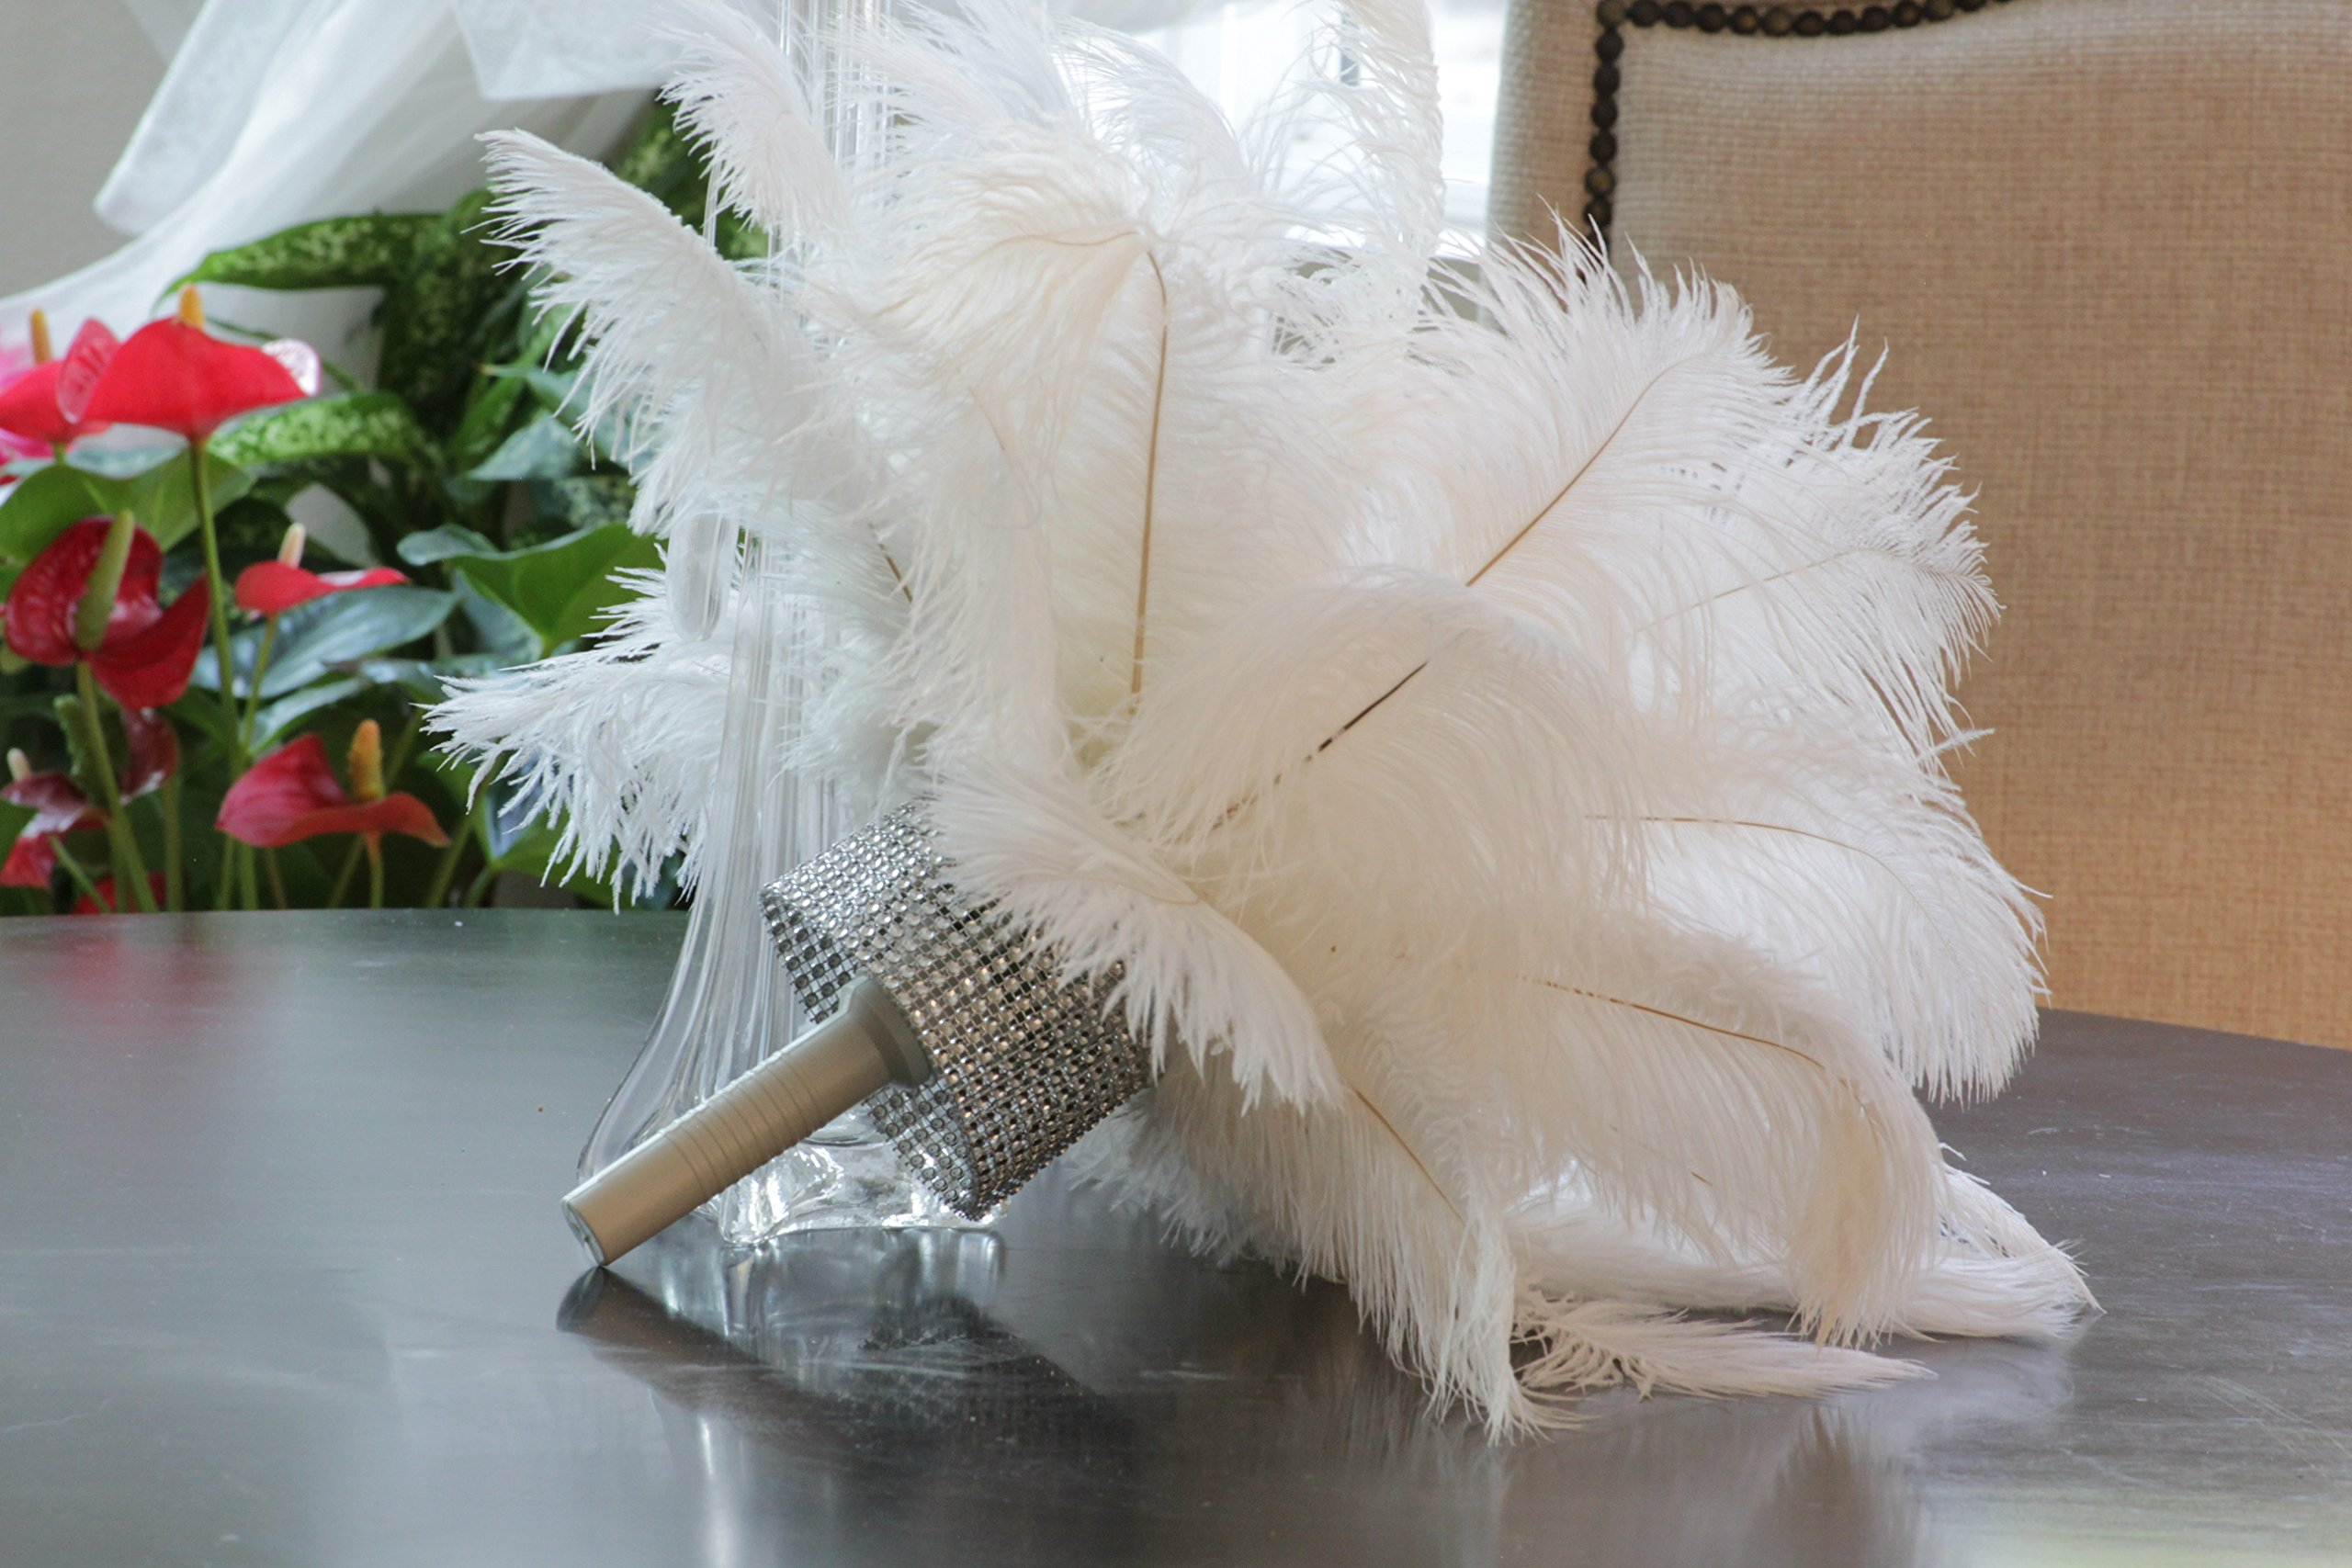 Special Sale Genuine OSTRICH Feathers Wholesale Bulk 10-14'' long DELUXE Feathers BLEACH WHITE